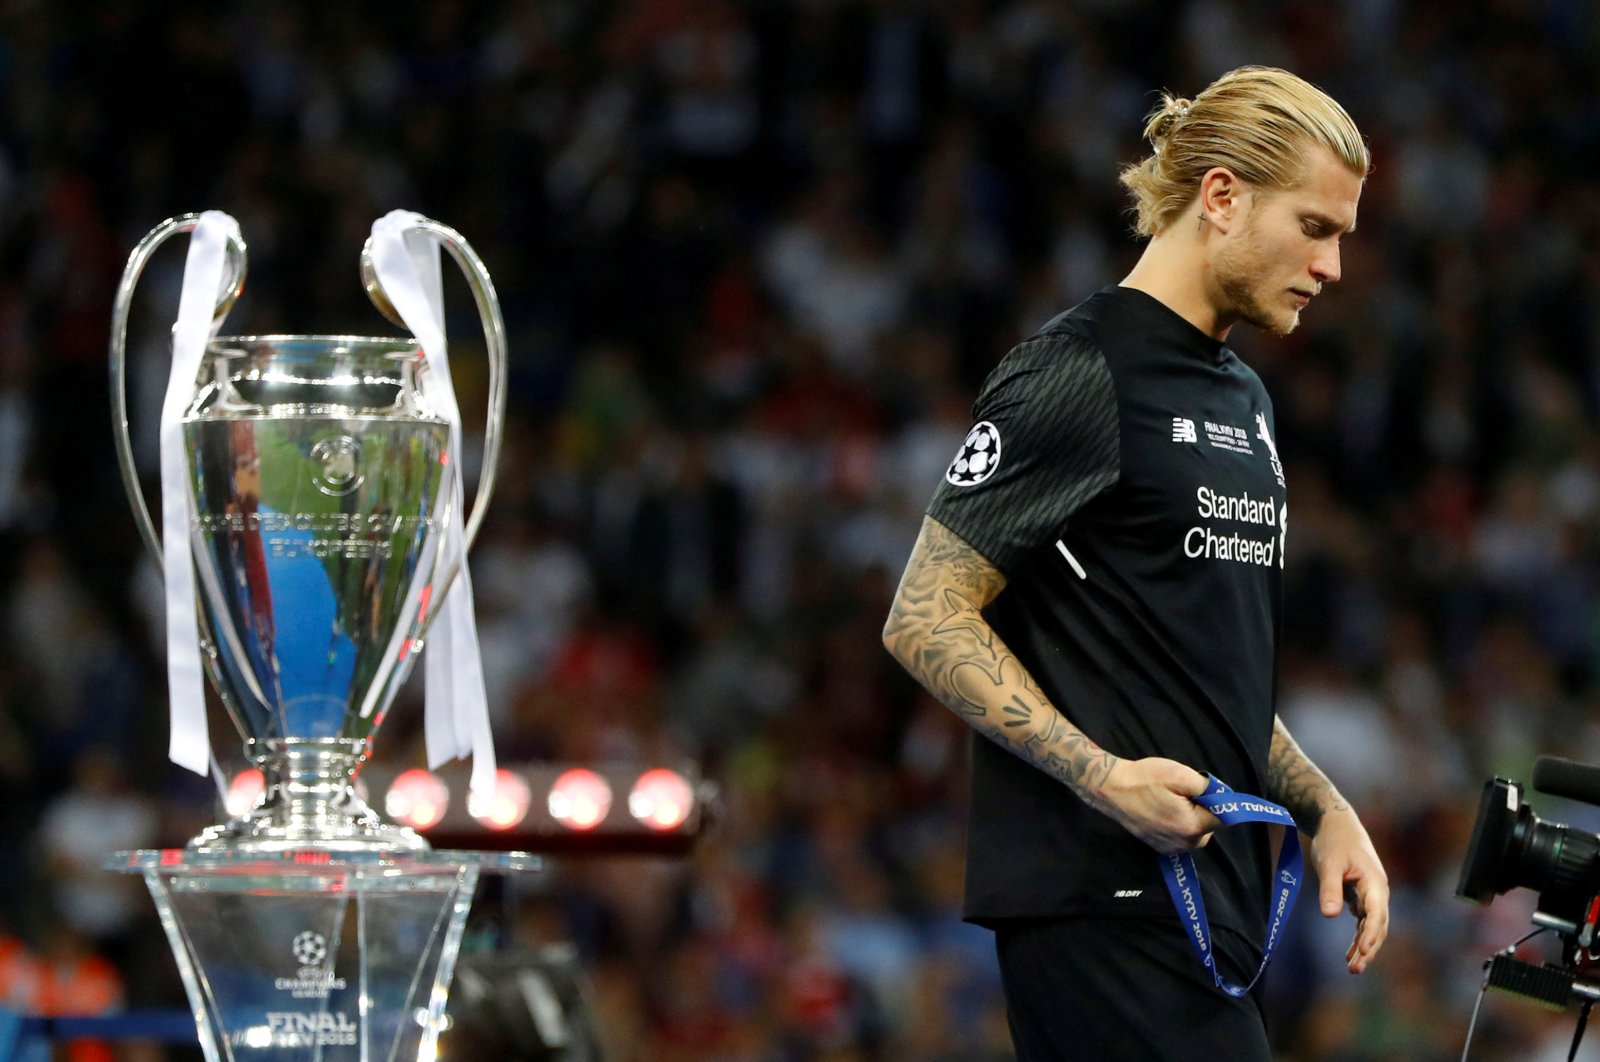 Champions League Final between Real Madrid and Liverpool at NSC Olympic Stadium, Kyiv, Ukraine on May 26, 2018. (Reuters Photo)